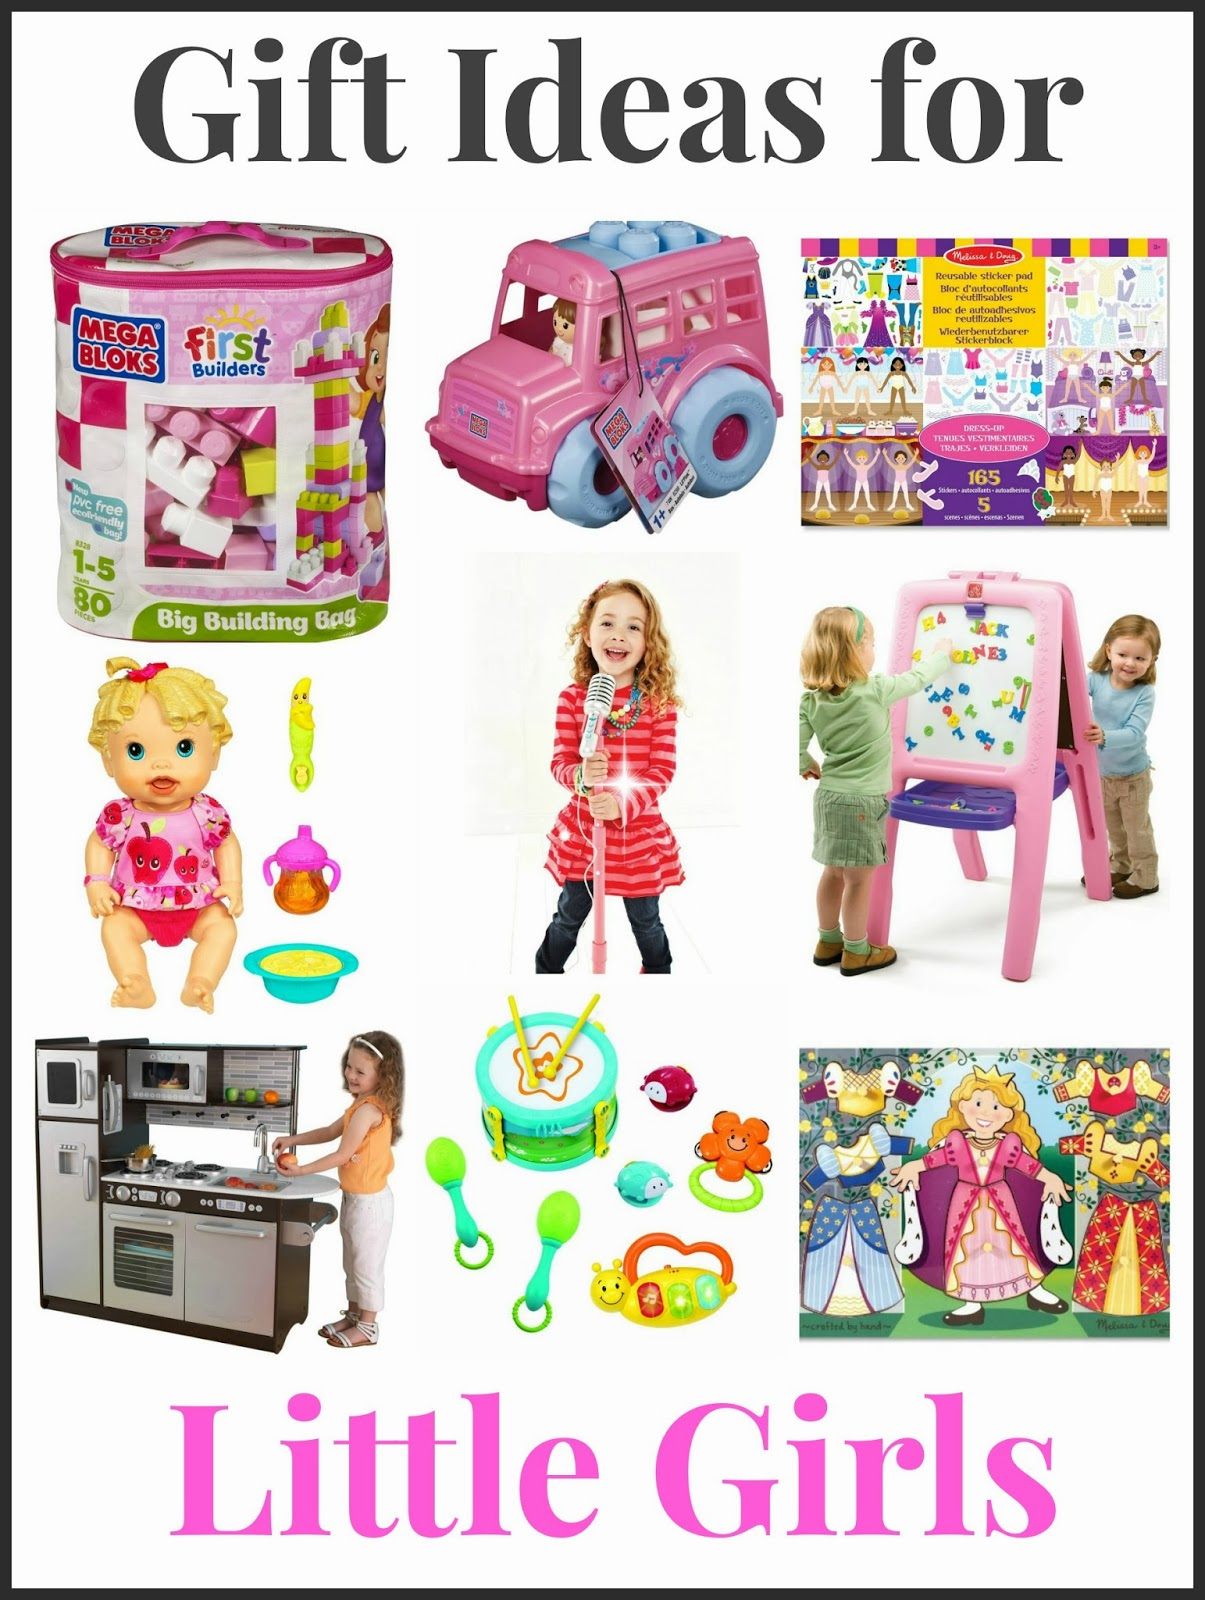 Toys For Girls Age 20 : Gift ideas for boyfriend age